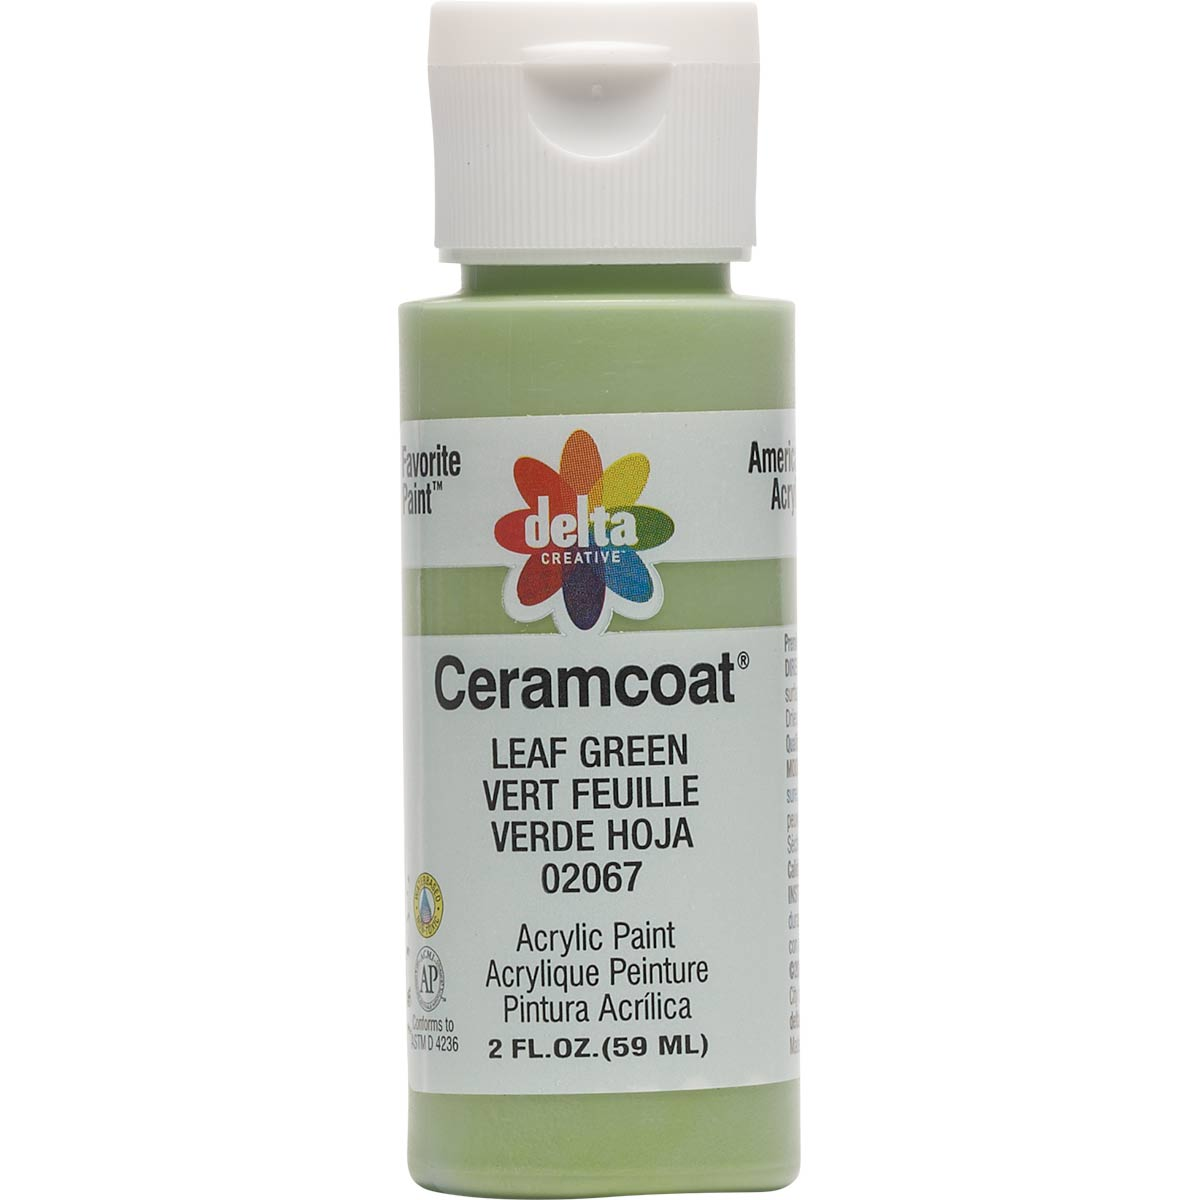 Delta Ceramcoat ® Acrylic Paint - Leaf Green, 2 oz. - 020670202W